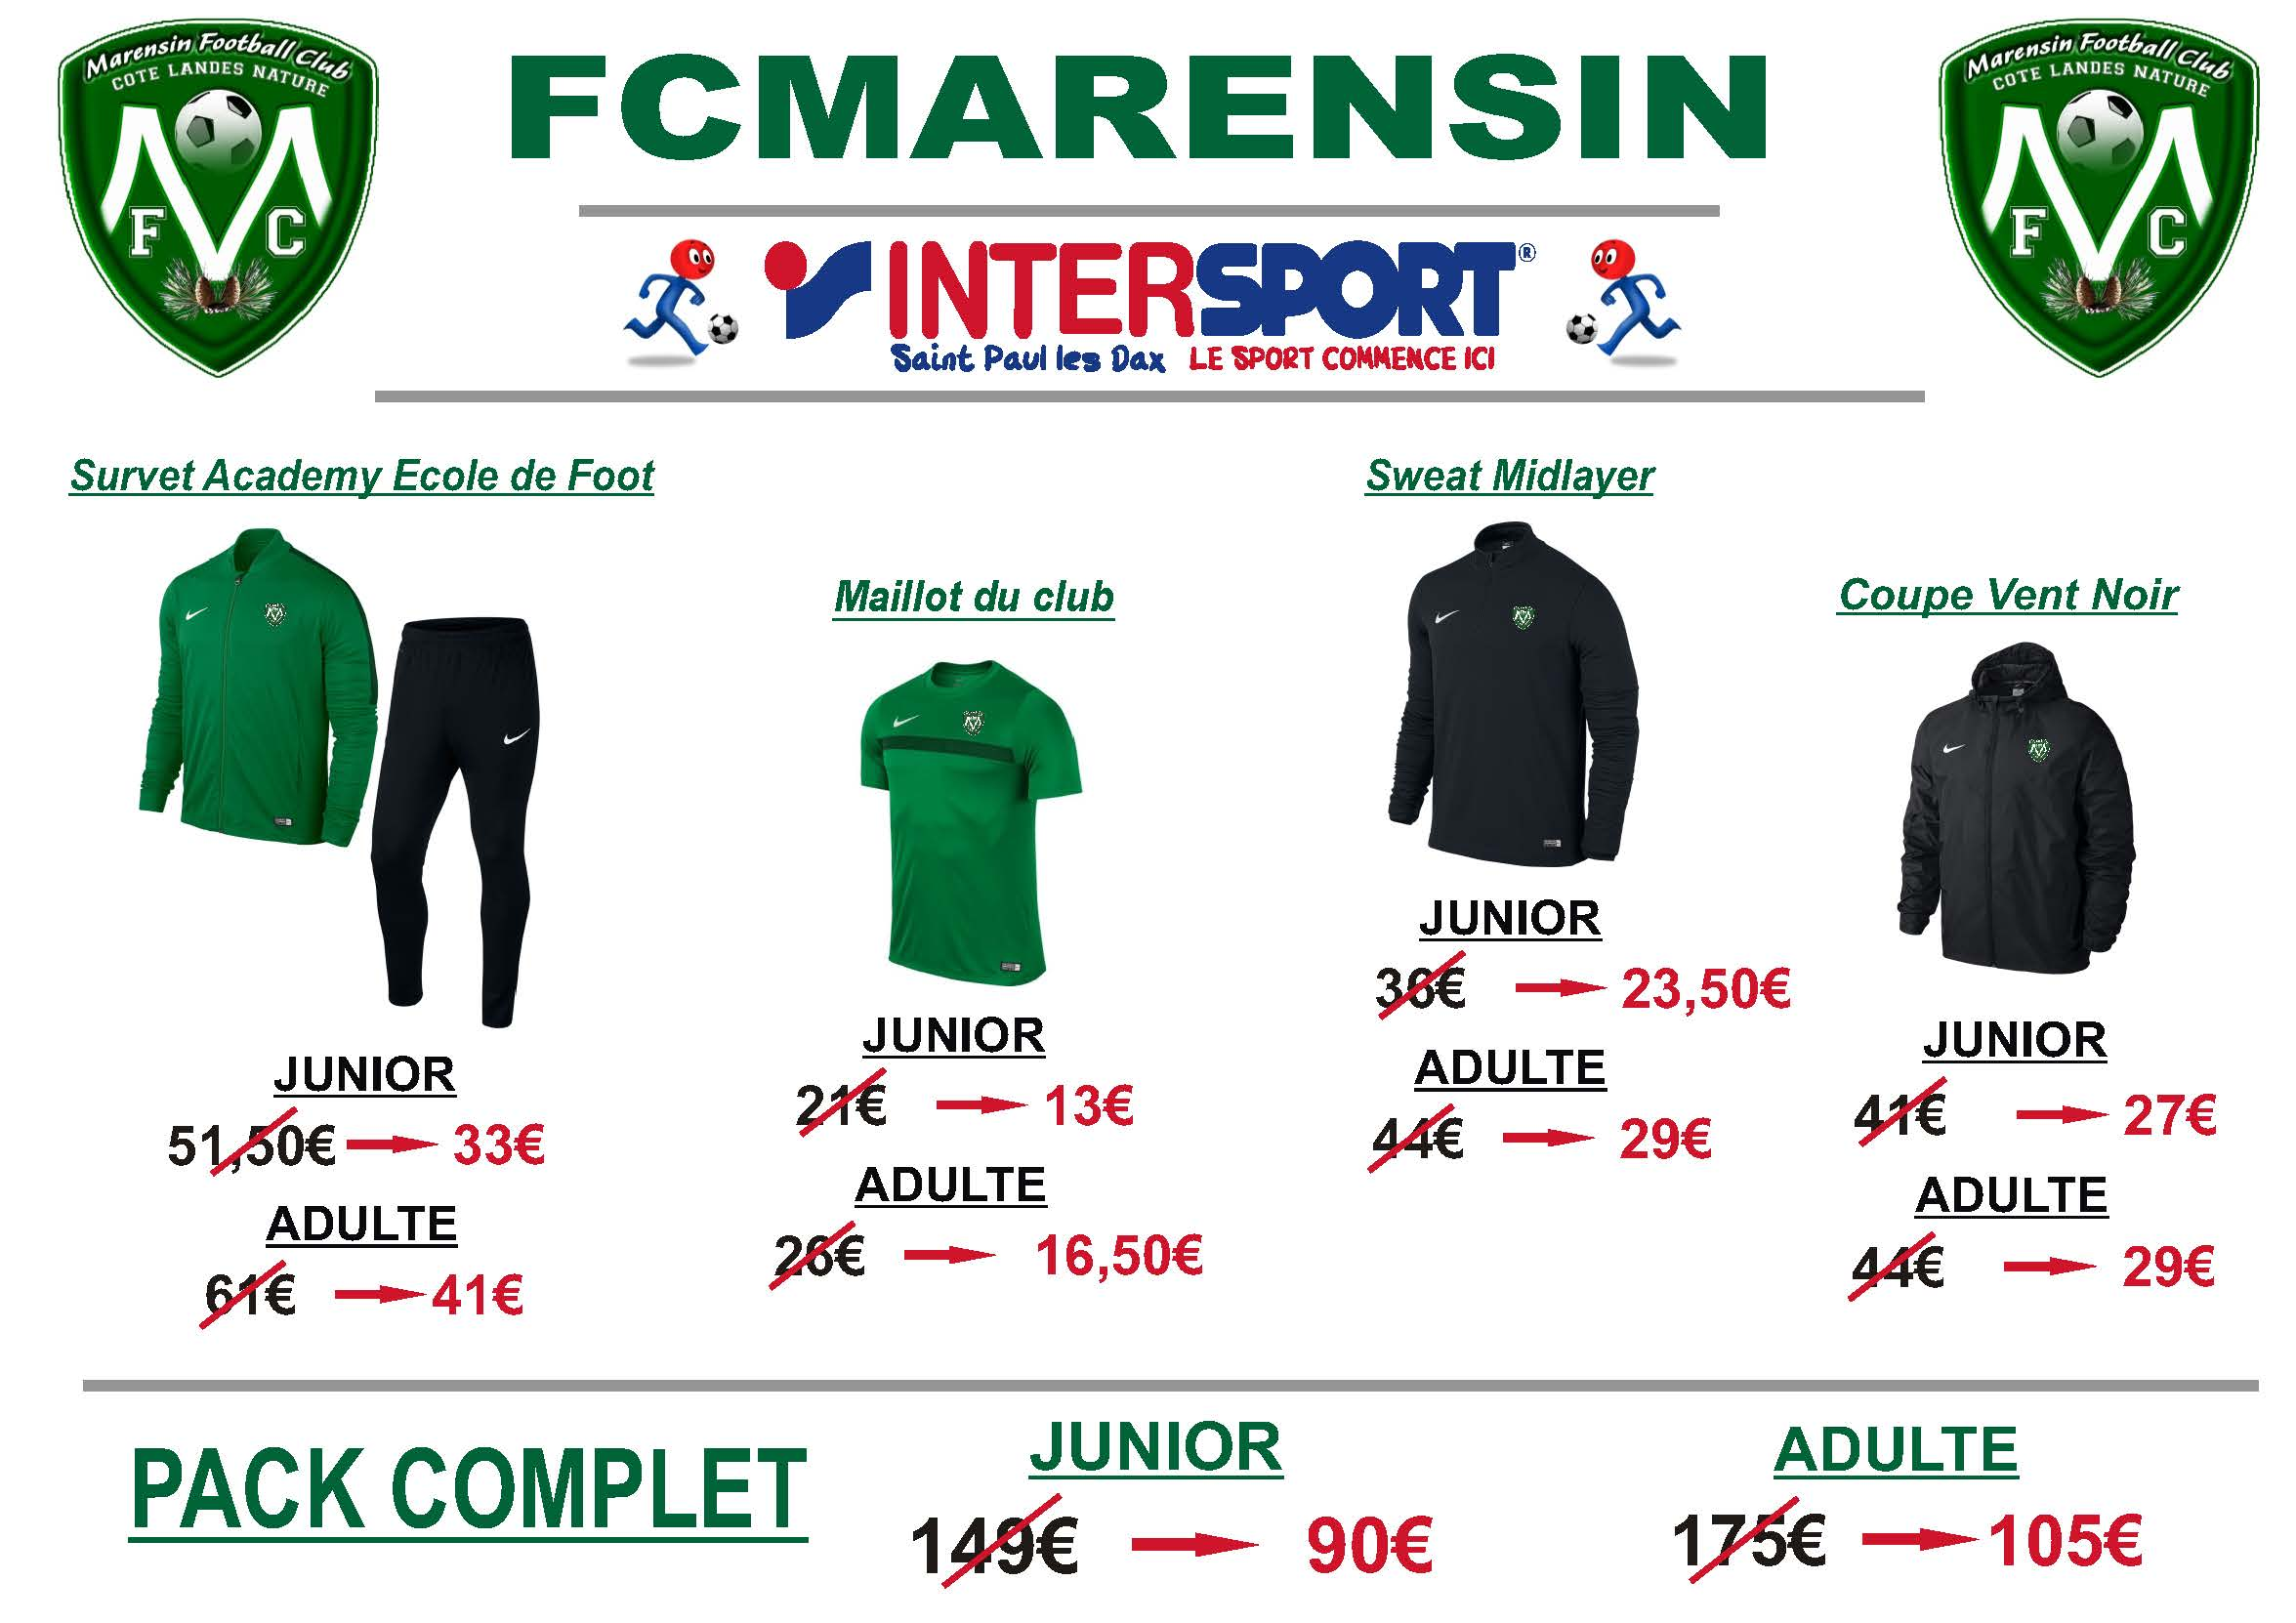 Tenues Officielles MARENSIN Football Club